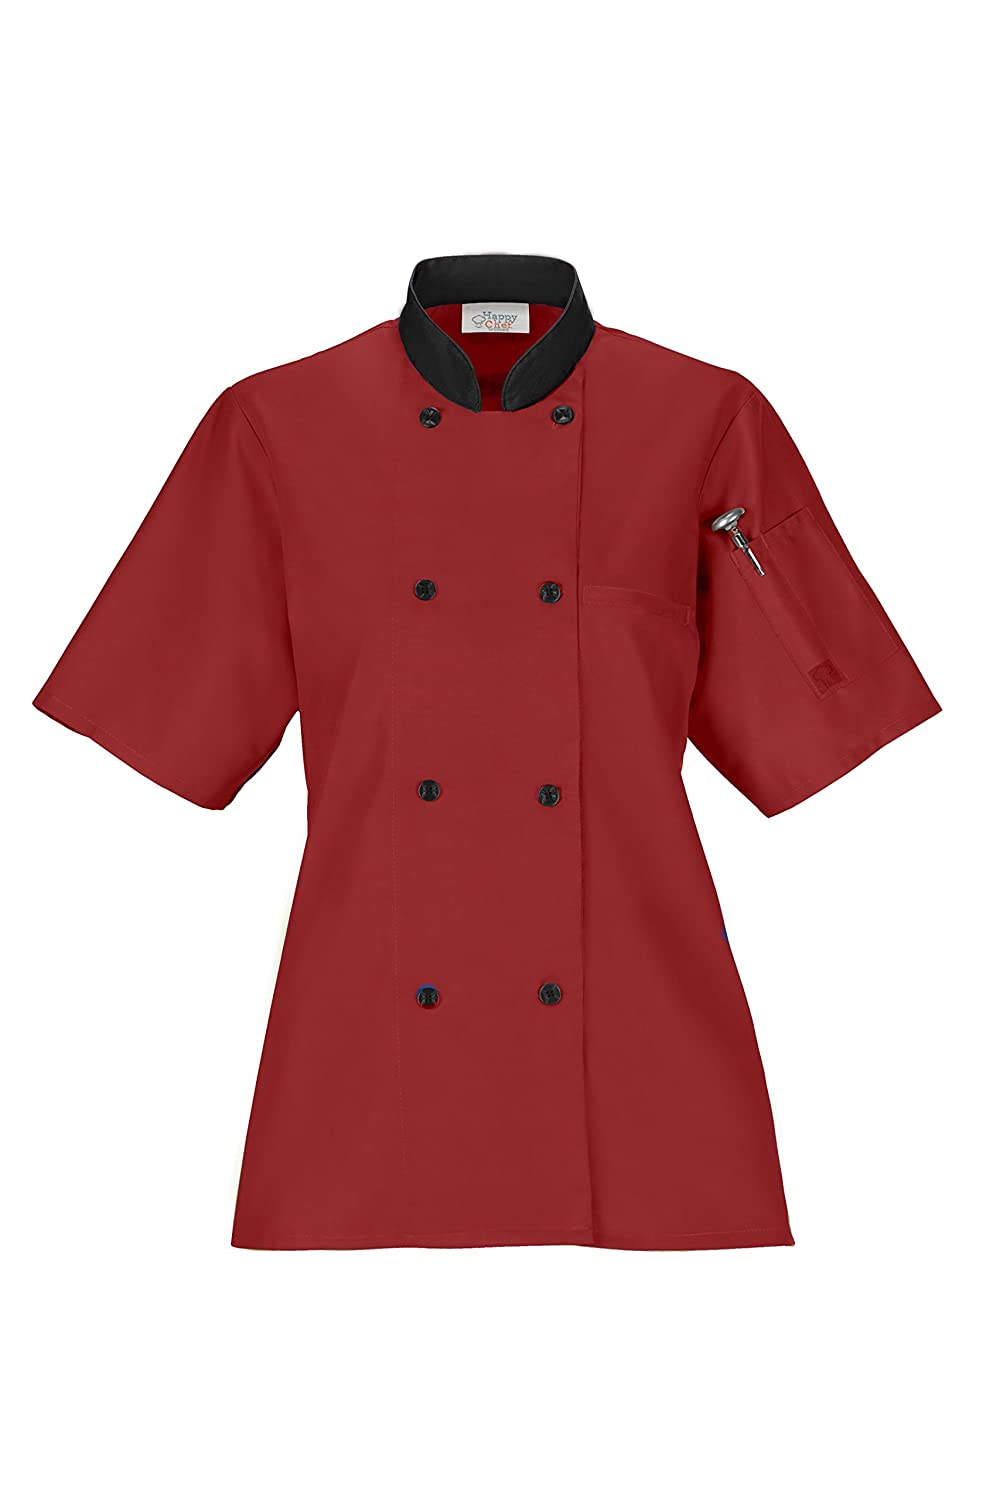 Women's Lightweight Chef Coat 305